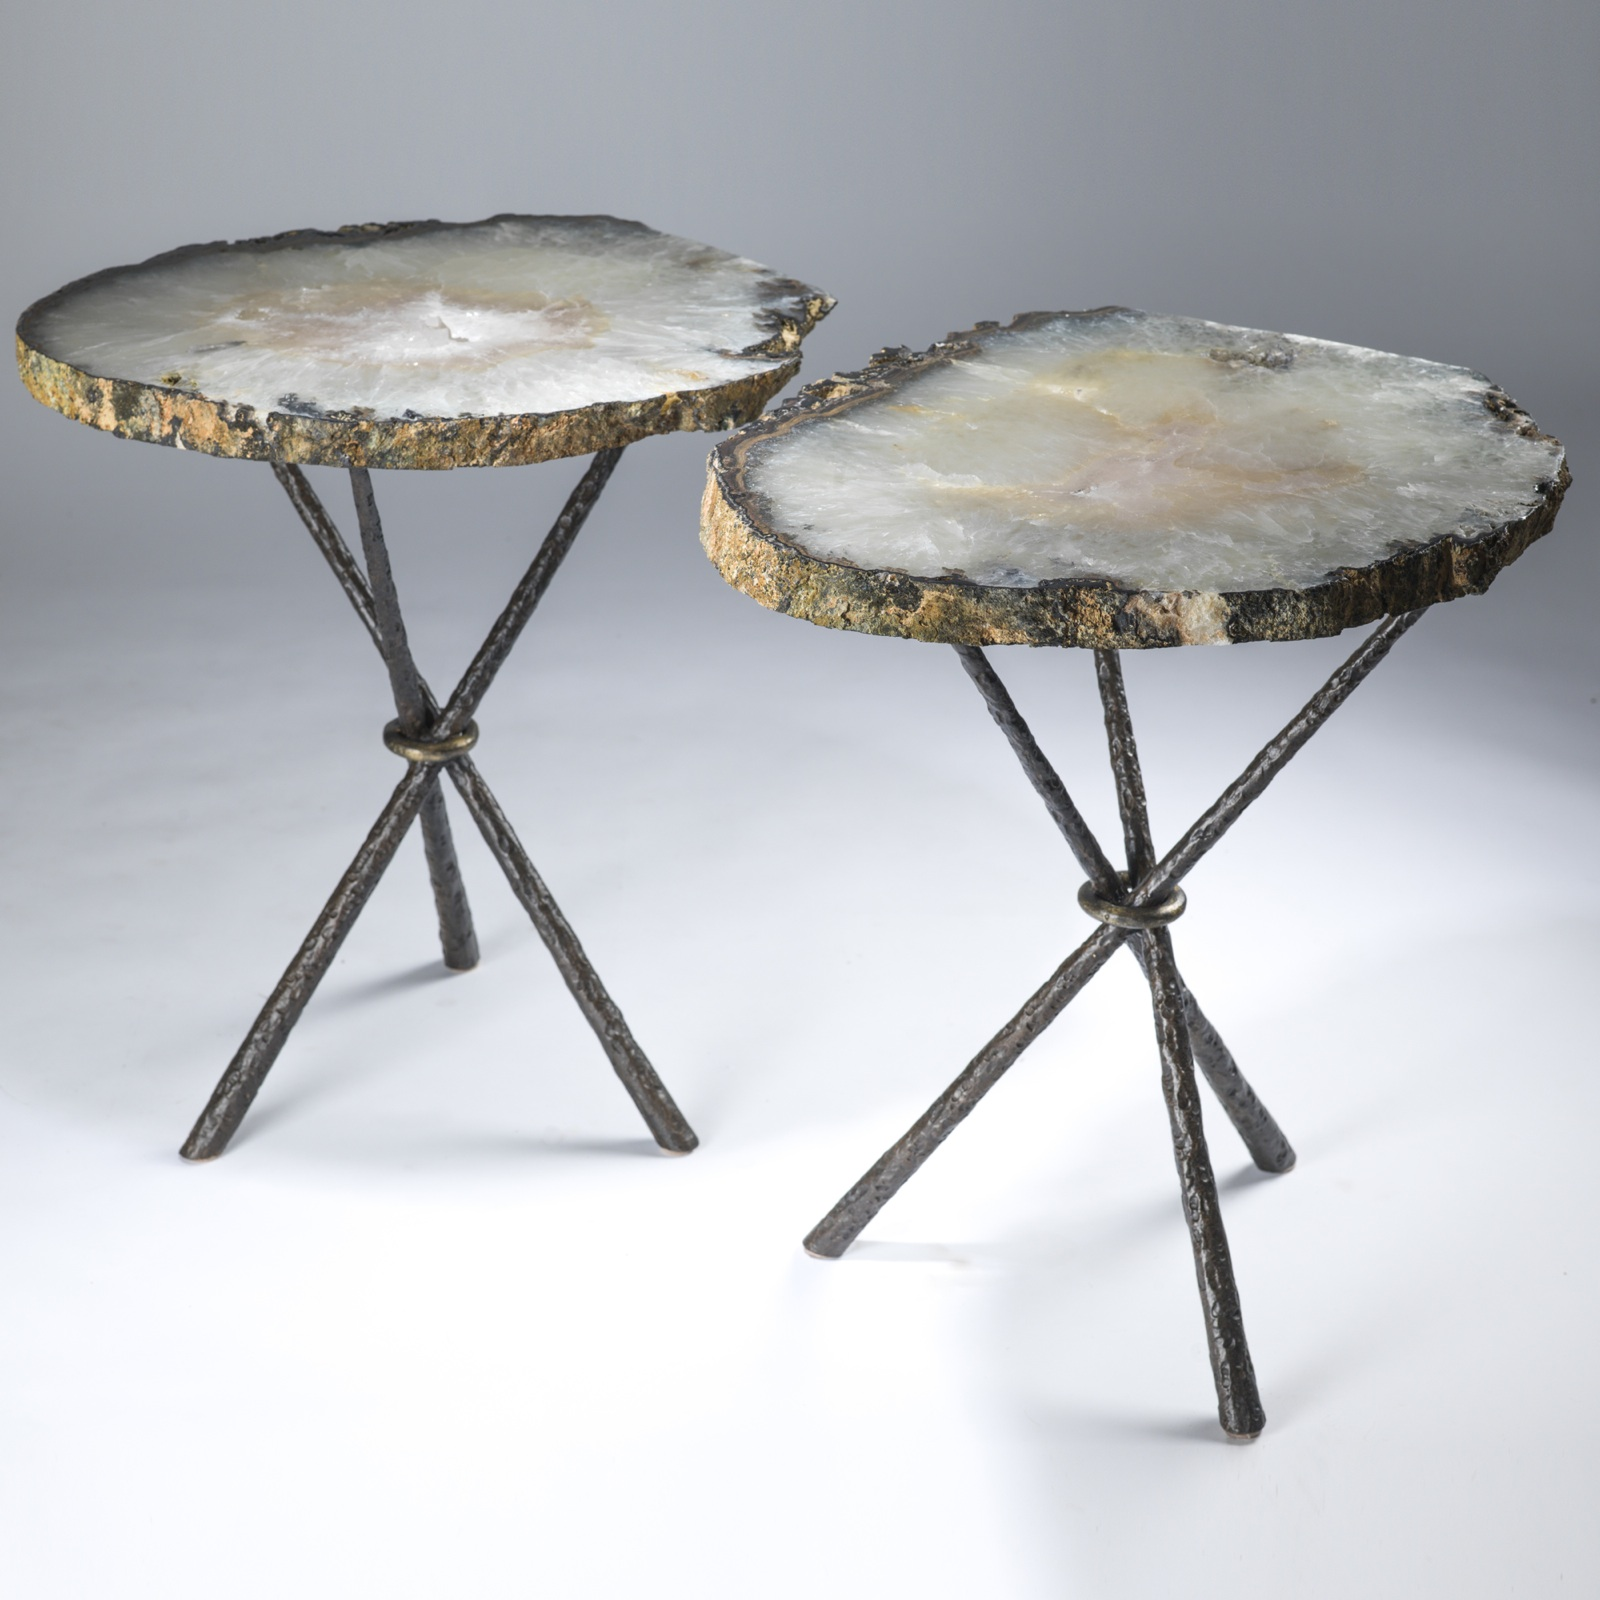 Pair Of Large Celadon Green Agate Slices On Tripod Tables